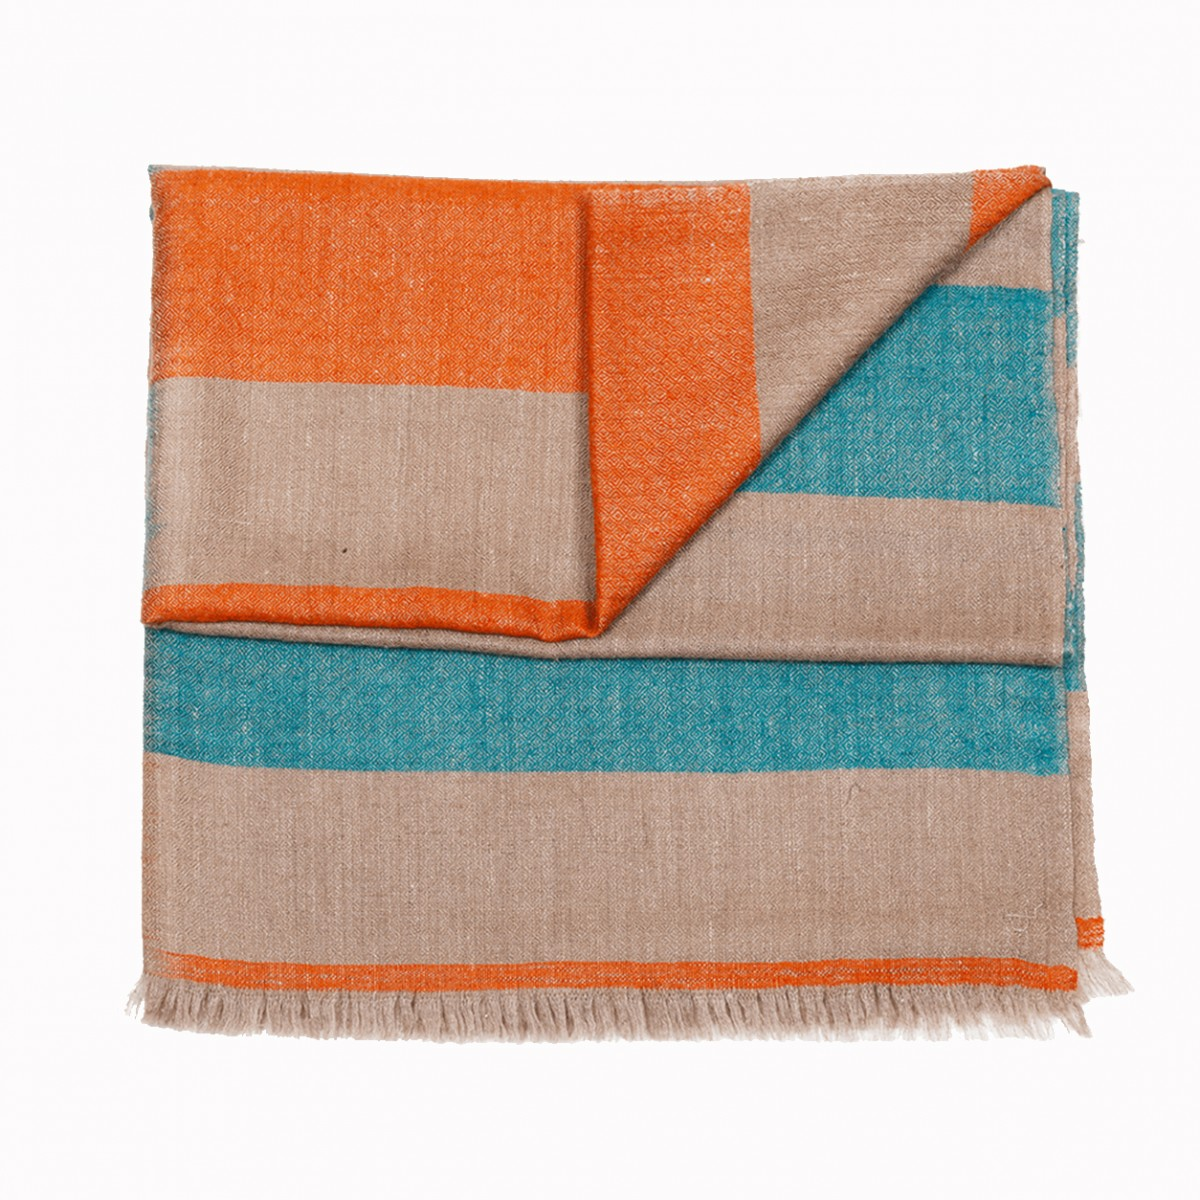 Kashmir Loom stripes natural multi pashmina stole